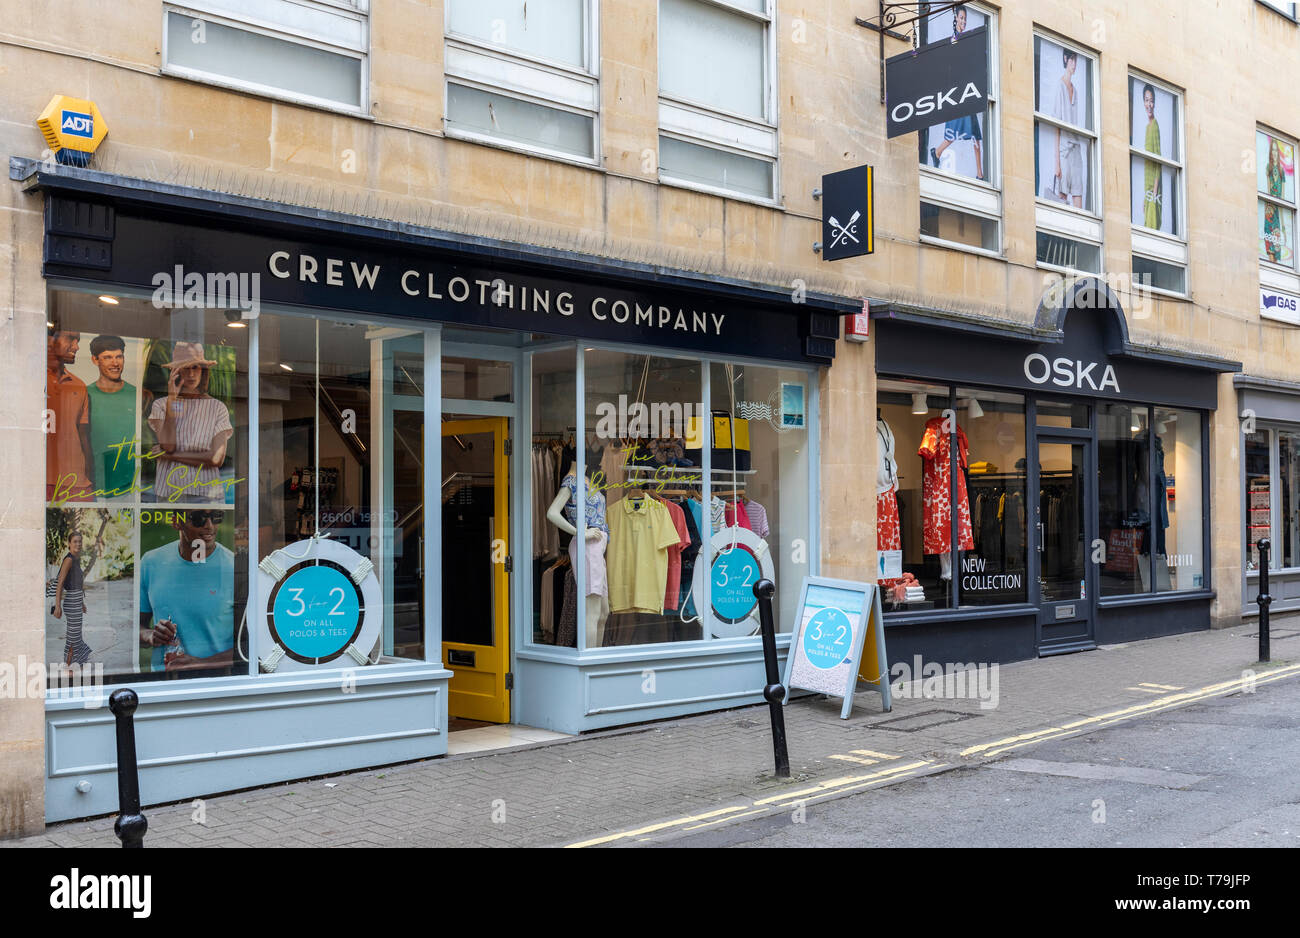 Crew Clothing Company and Oska stores in Upper Borough Walls, Bath, UK - Stock Image